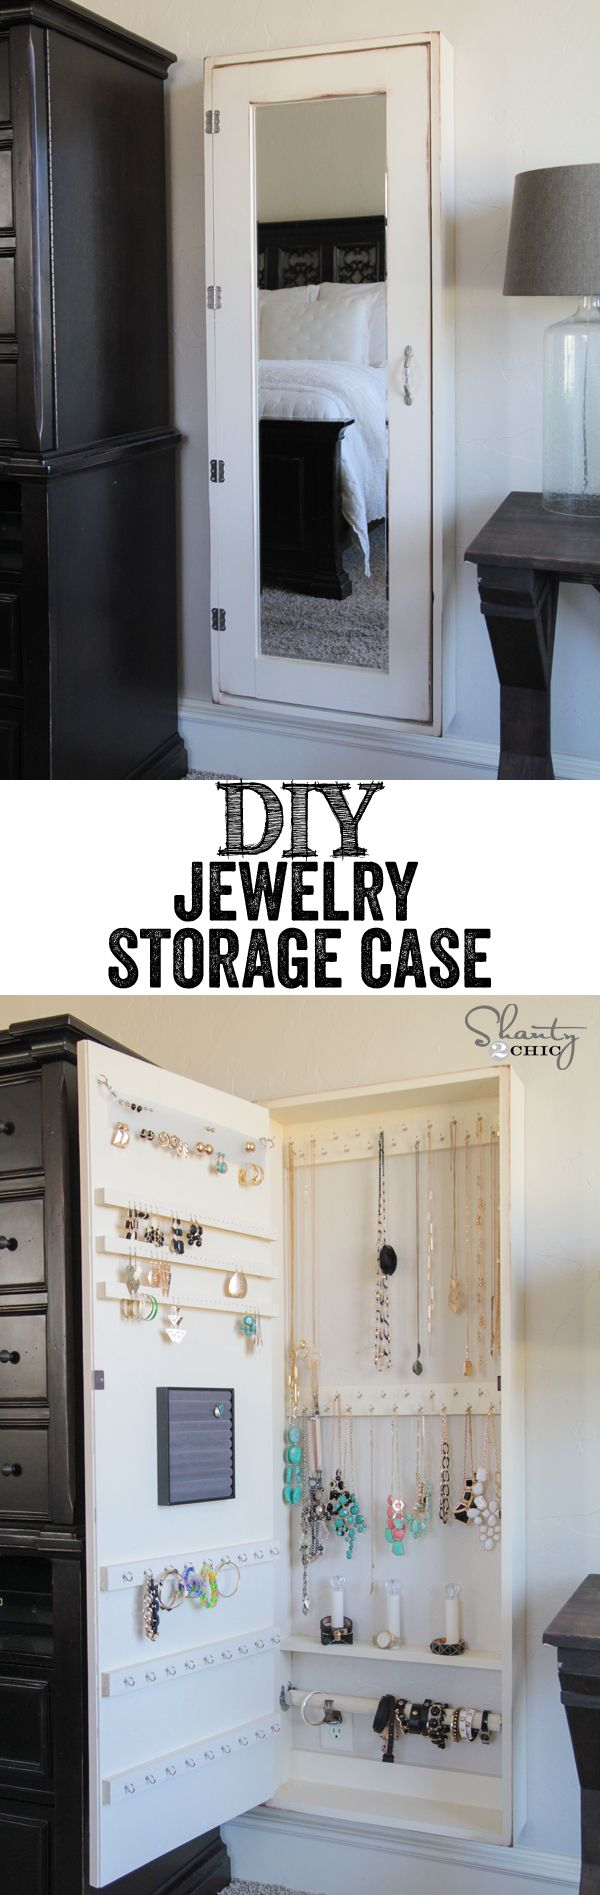 Bracelet Organizer Ideas Best 25 Jewelry Organization Ideas Only On Pinterest Jewelry